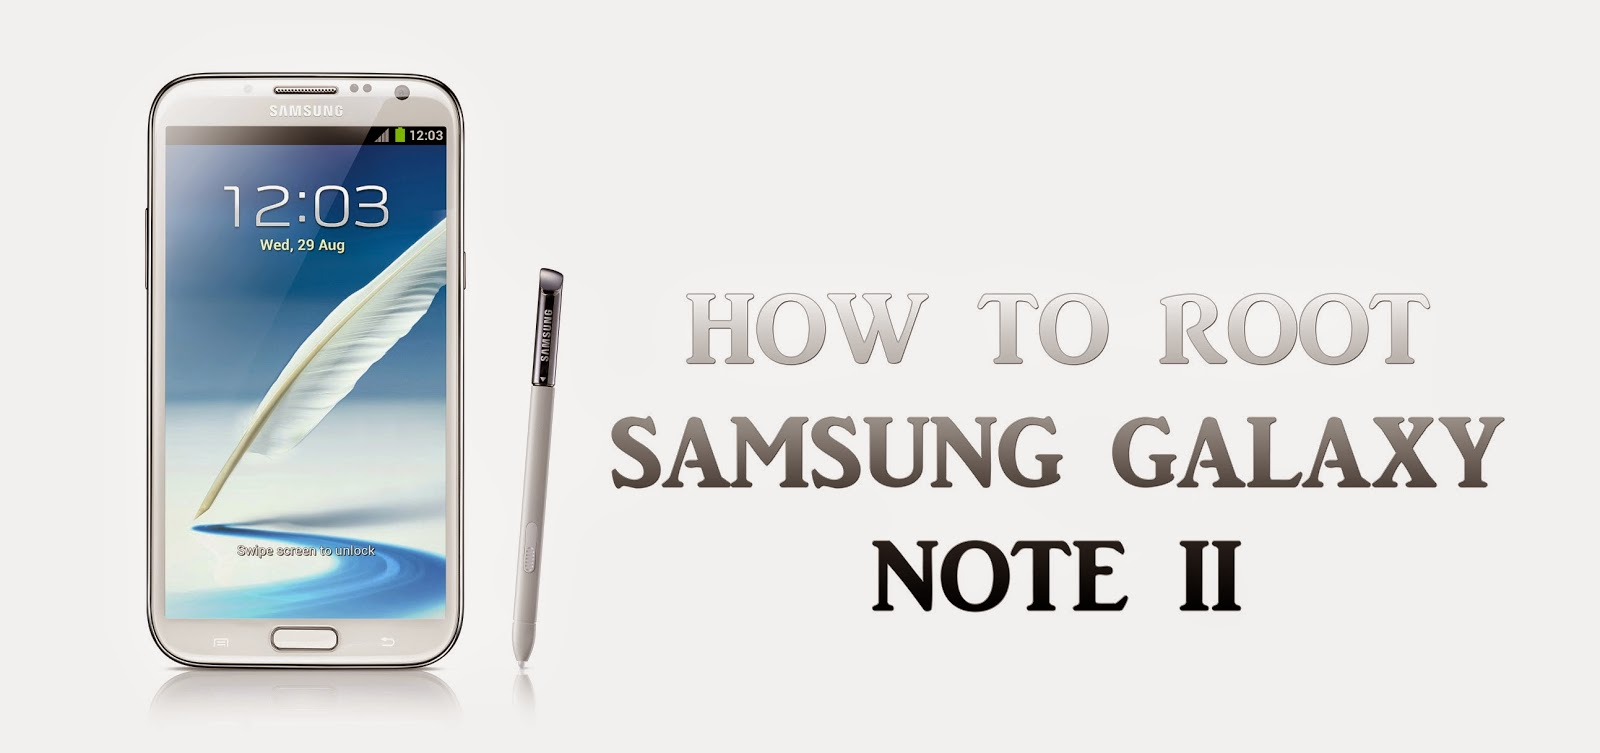 How to root Galaxy Note II